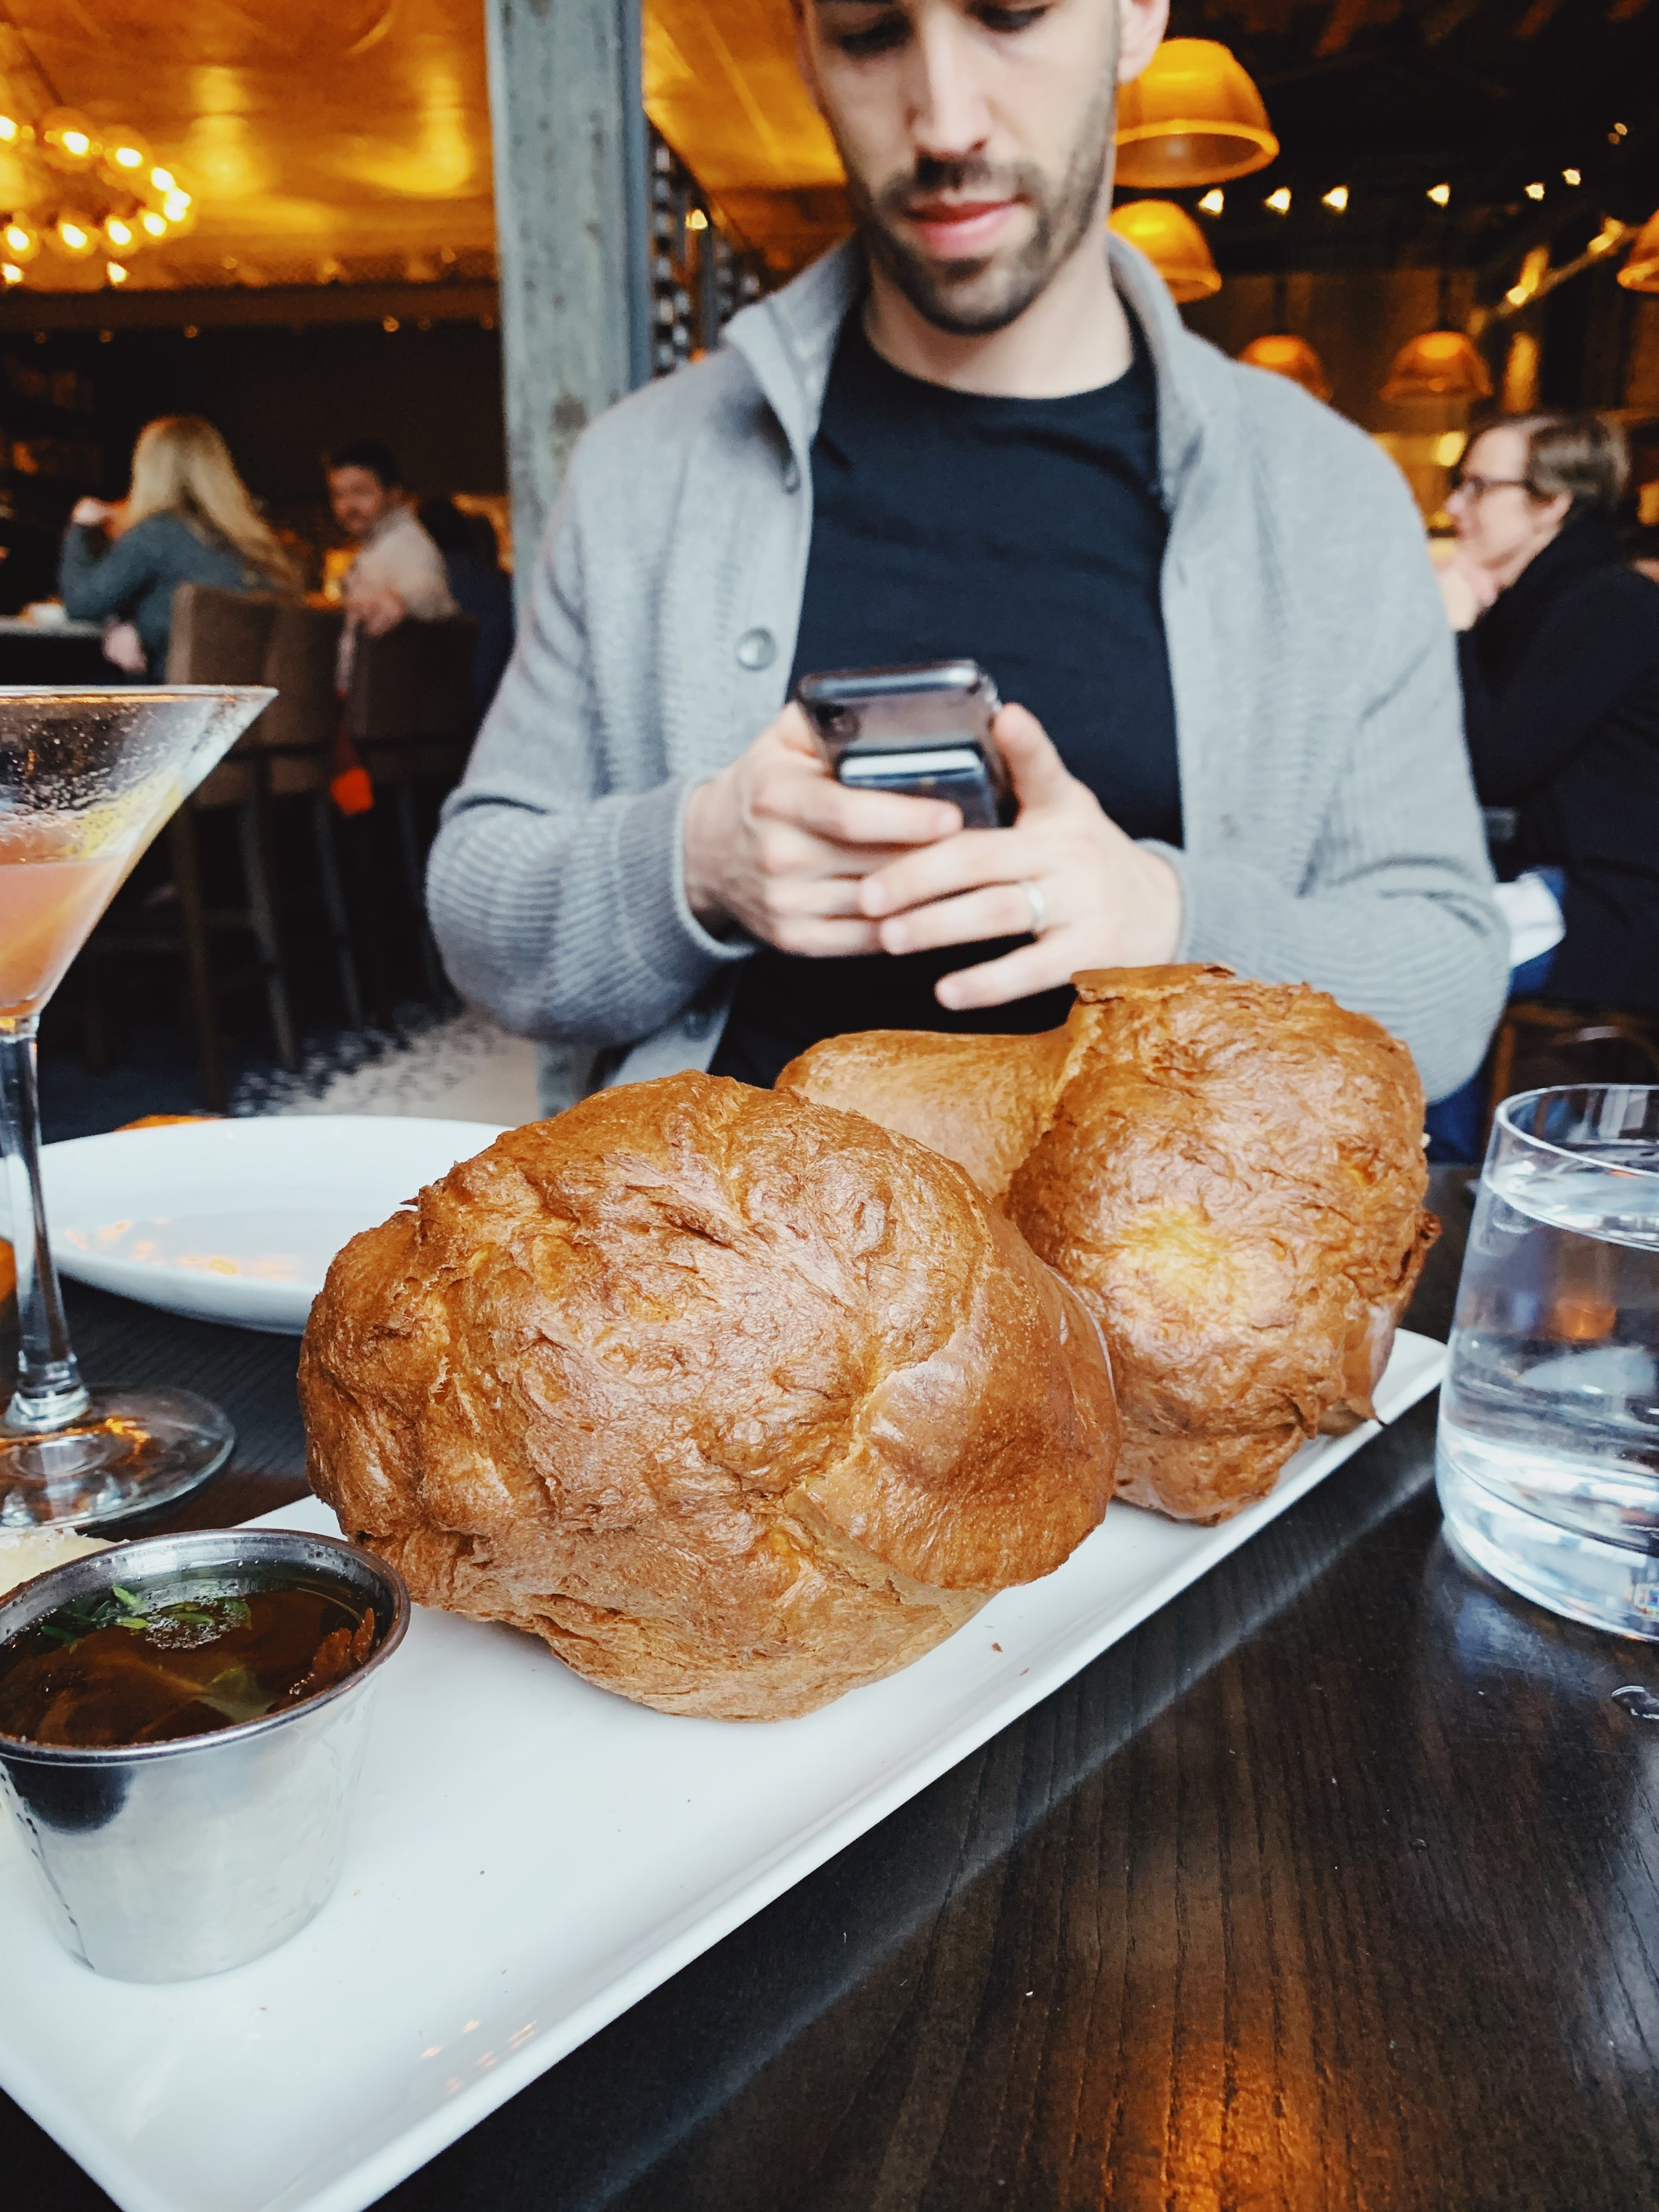 brian LOVES popovers